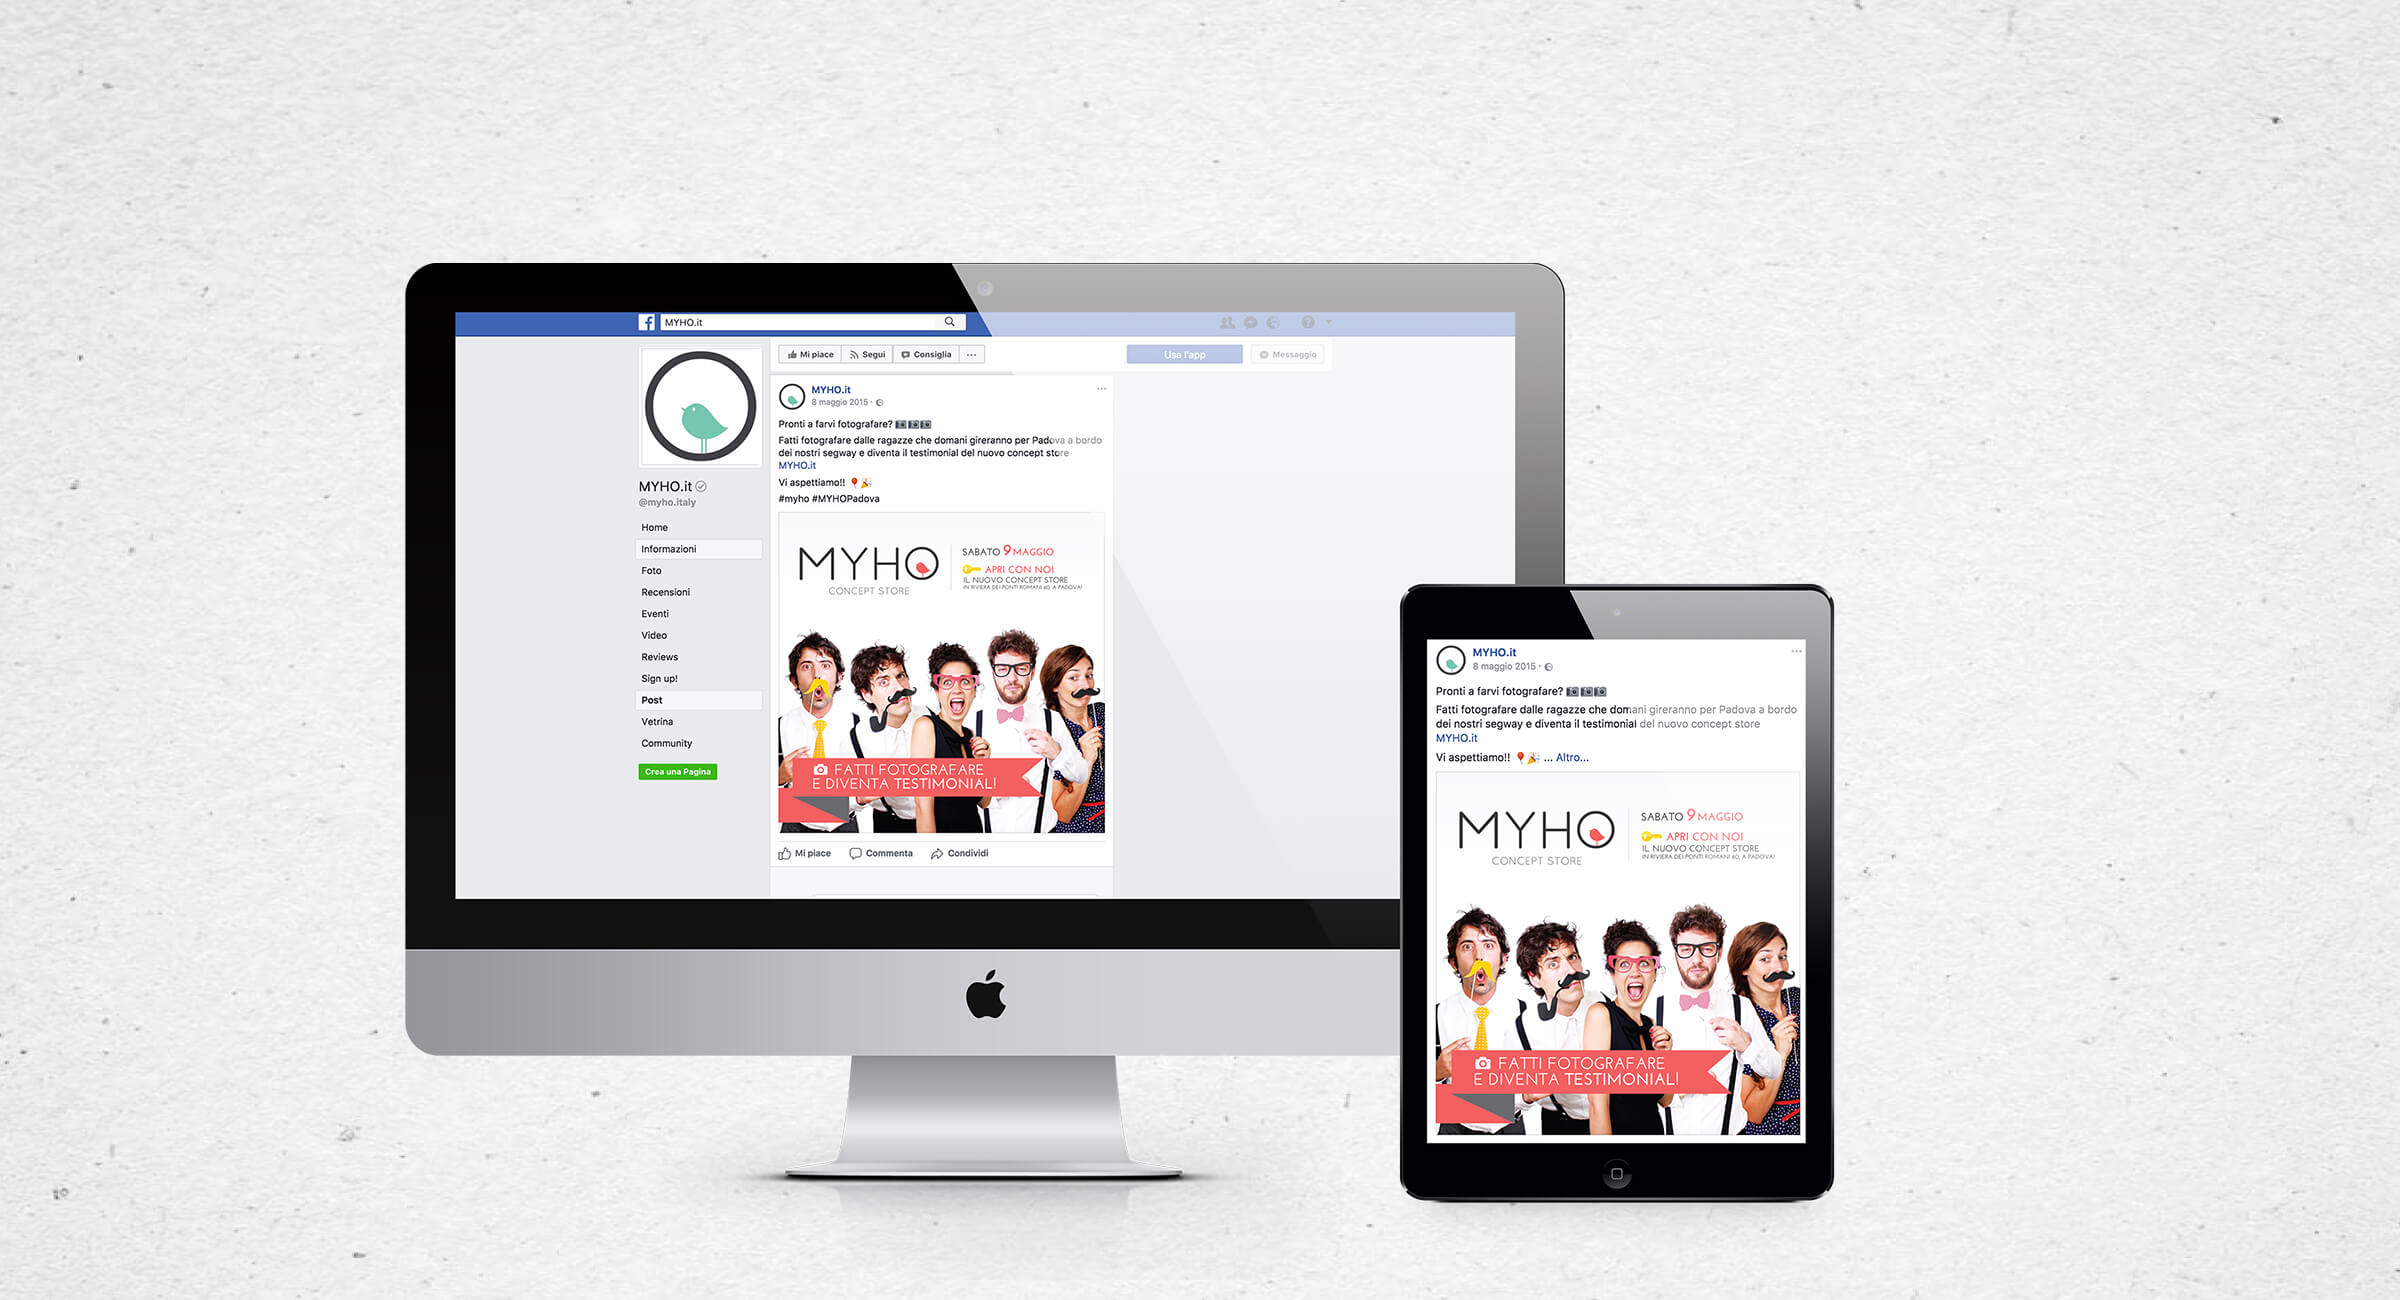 OnOff-Communicatin-Social-Media-Marketing-per-MYHO